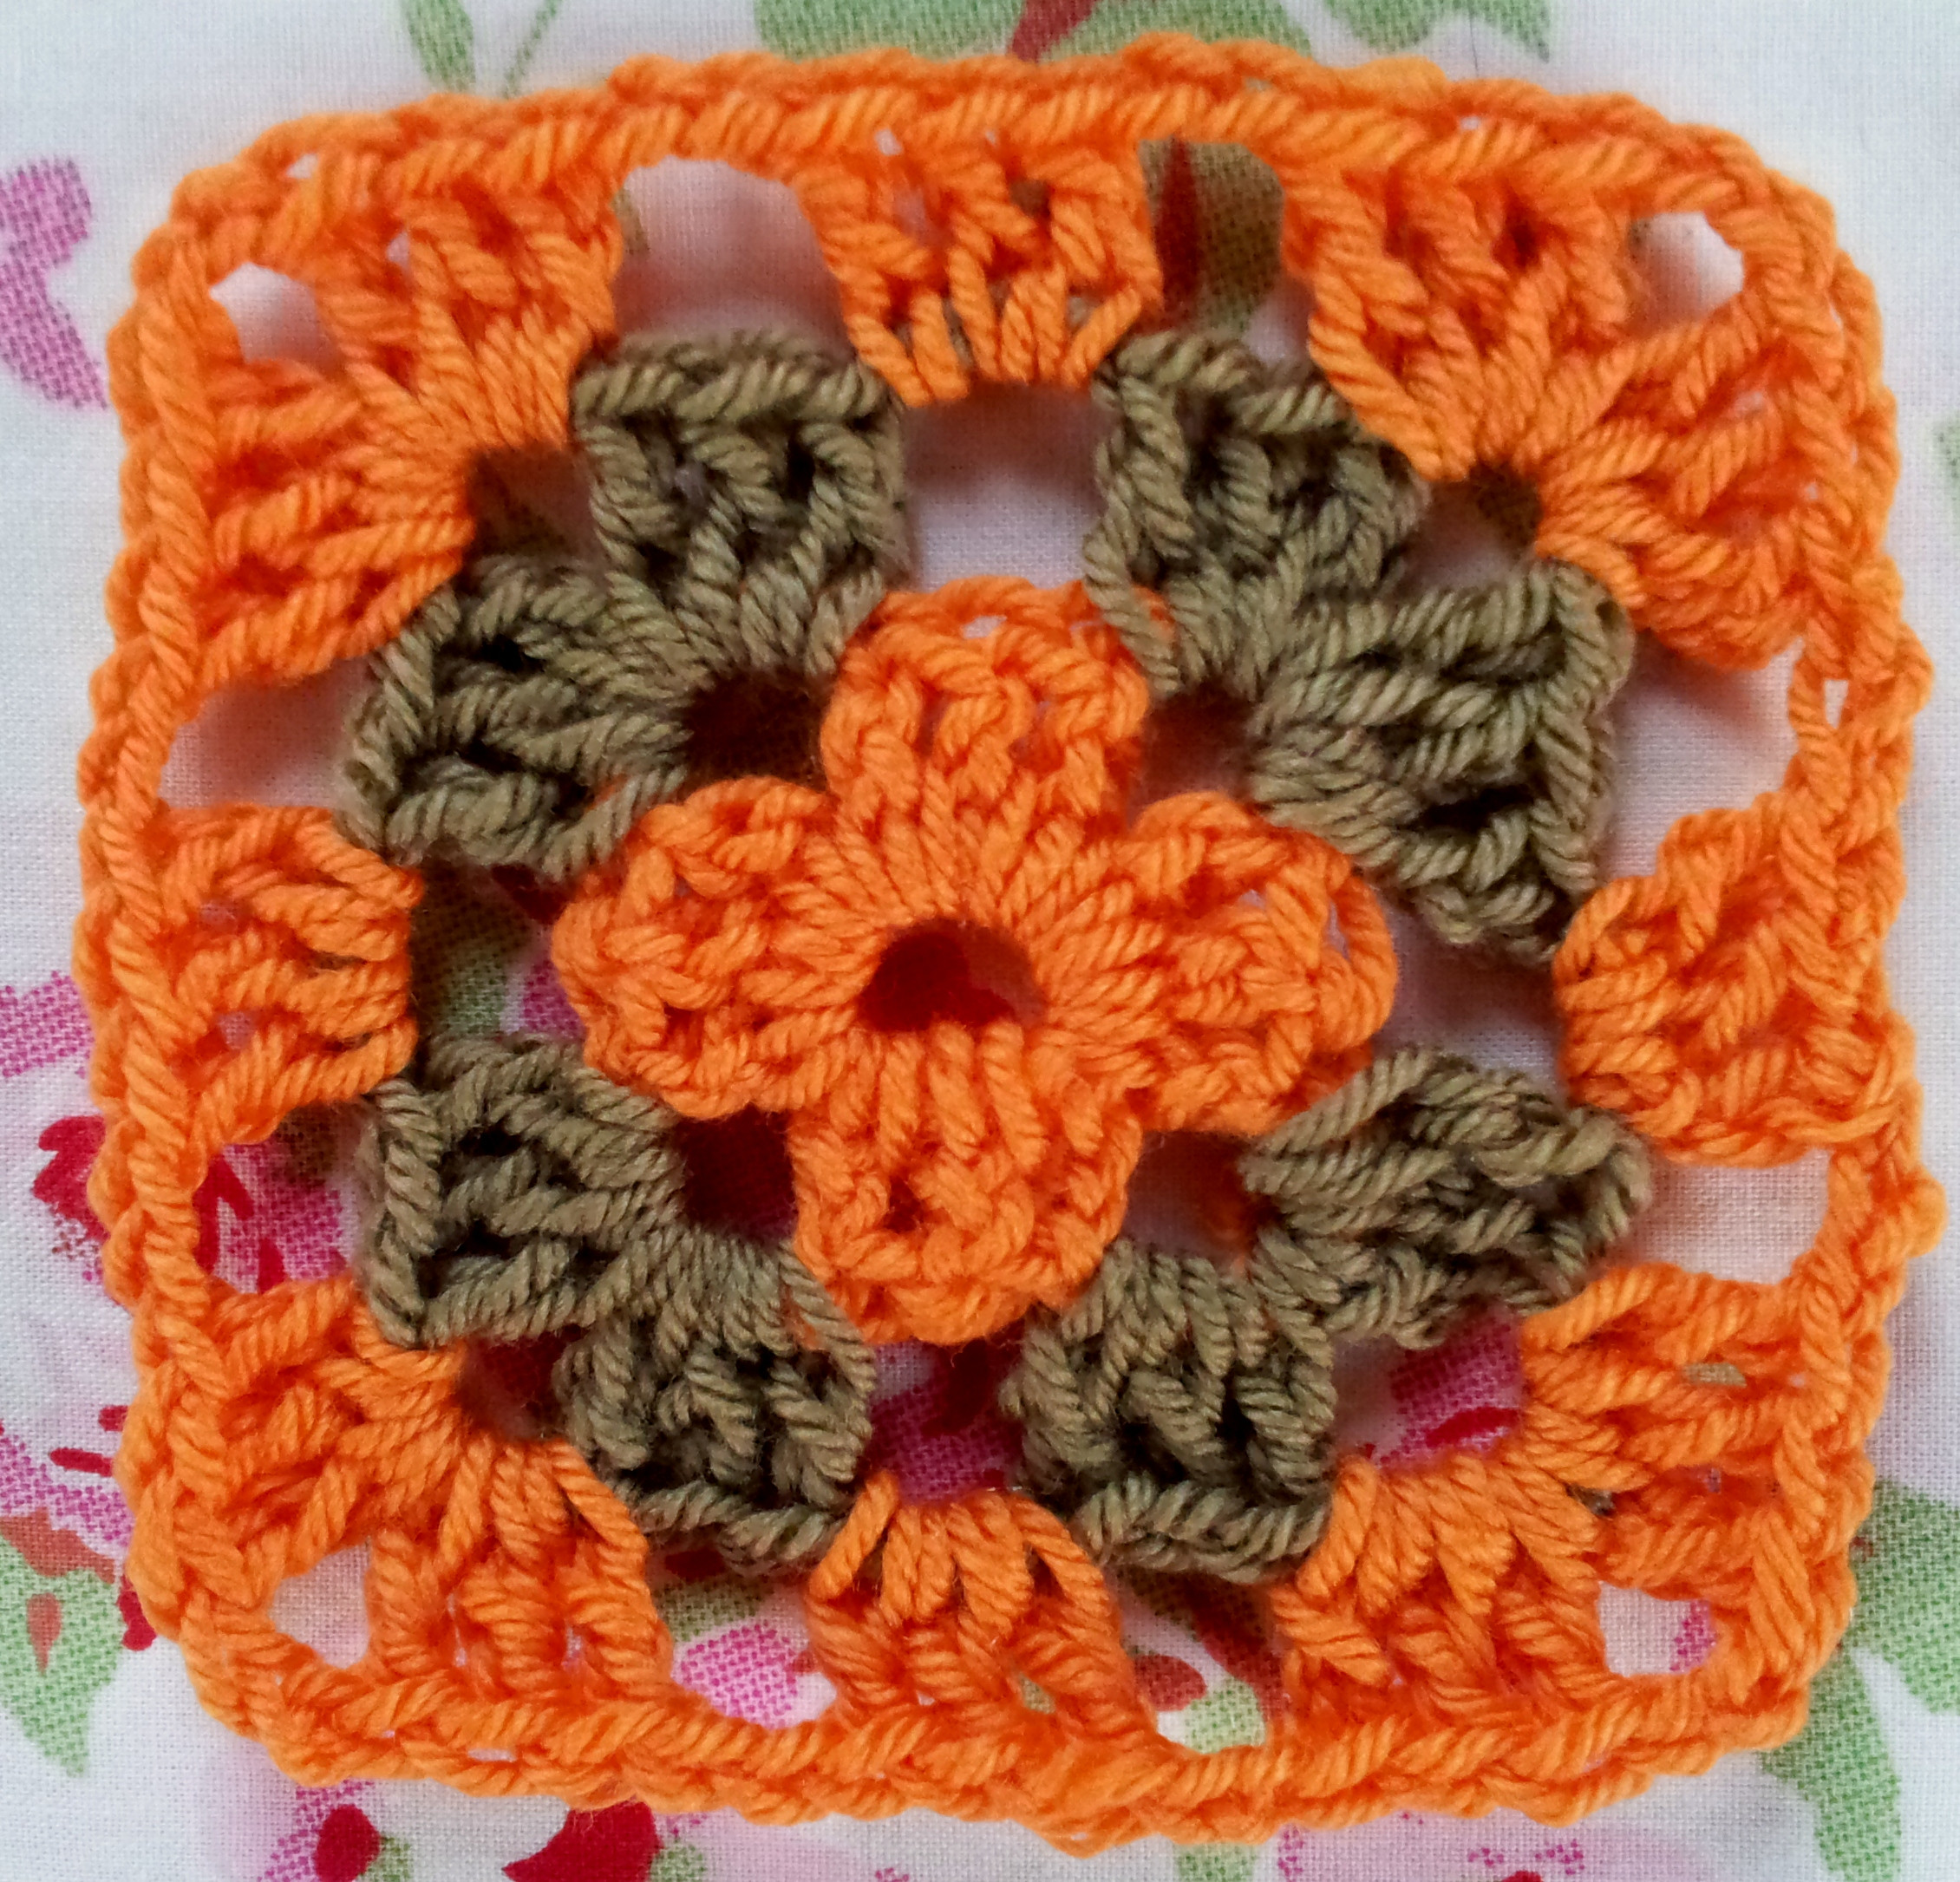 Crochet Square Patterns Awesome Free Crochet Patterns Of Marvelous 43 Photos Crochet Square Patterns